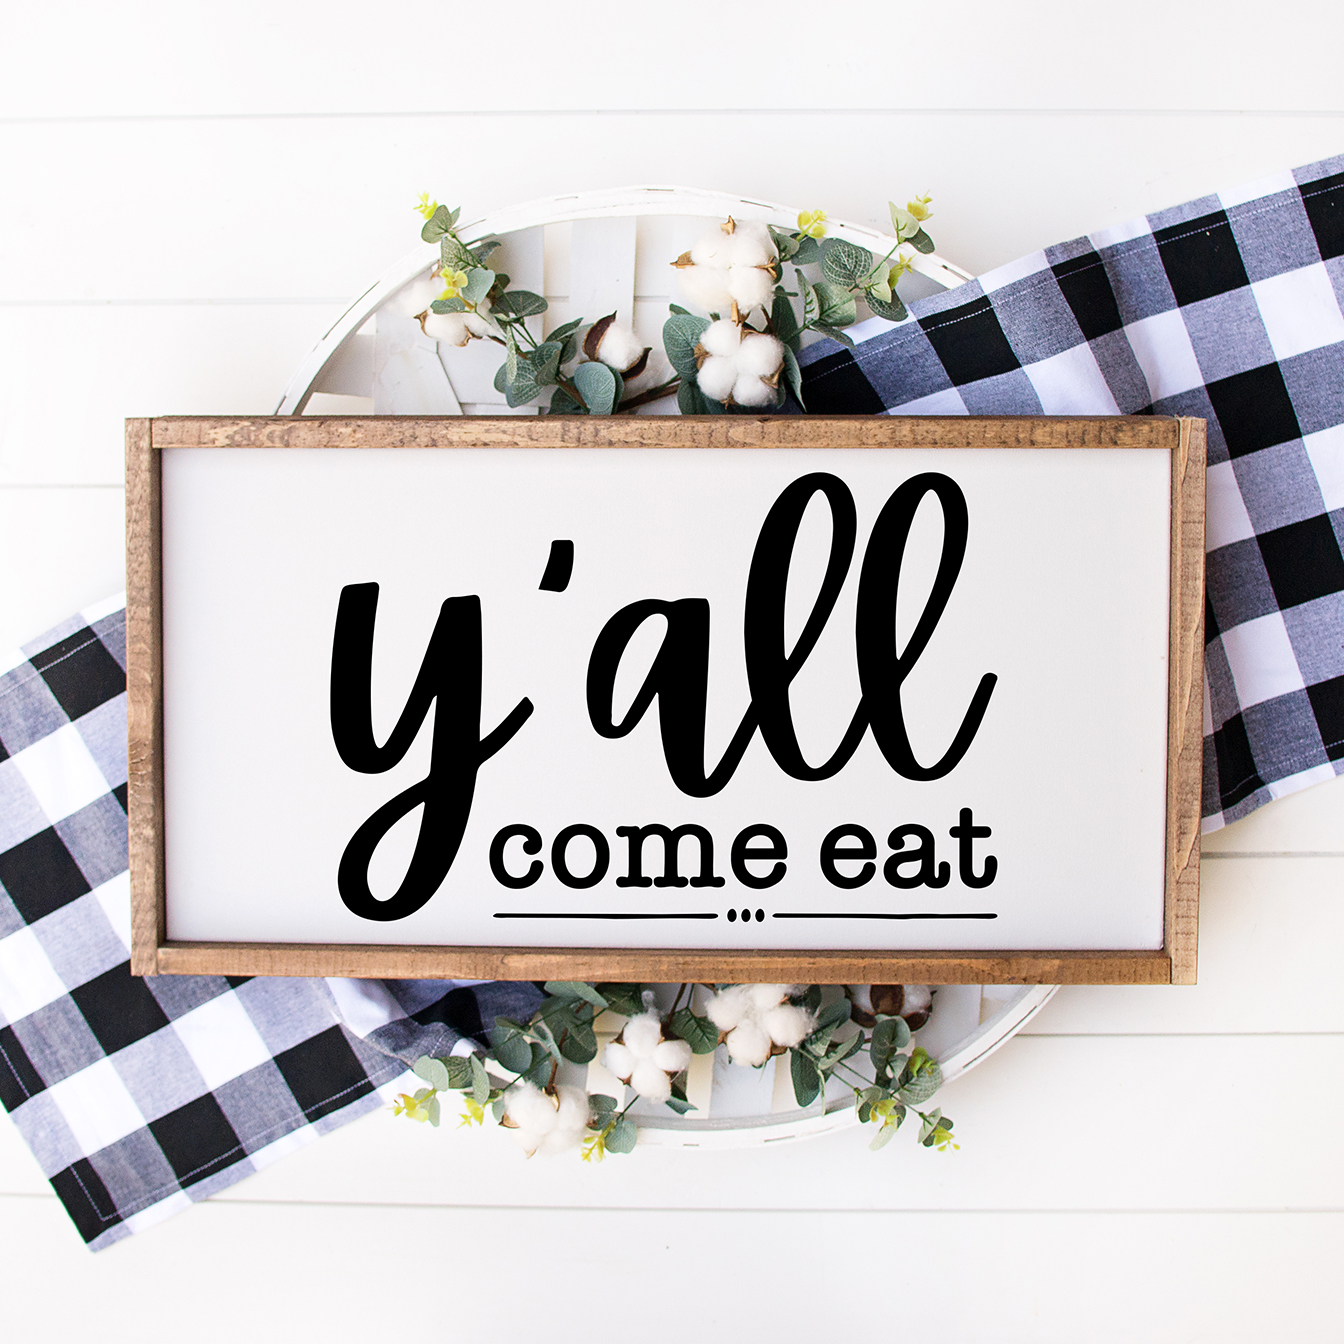 y'all come eat diy wooden farmhouse kitchen sign